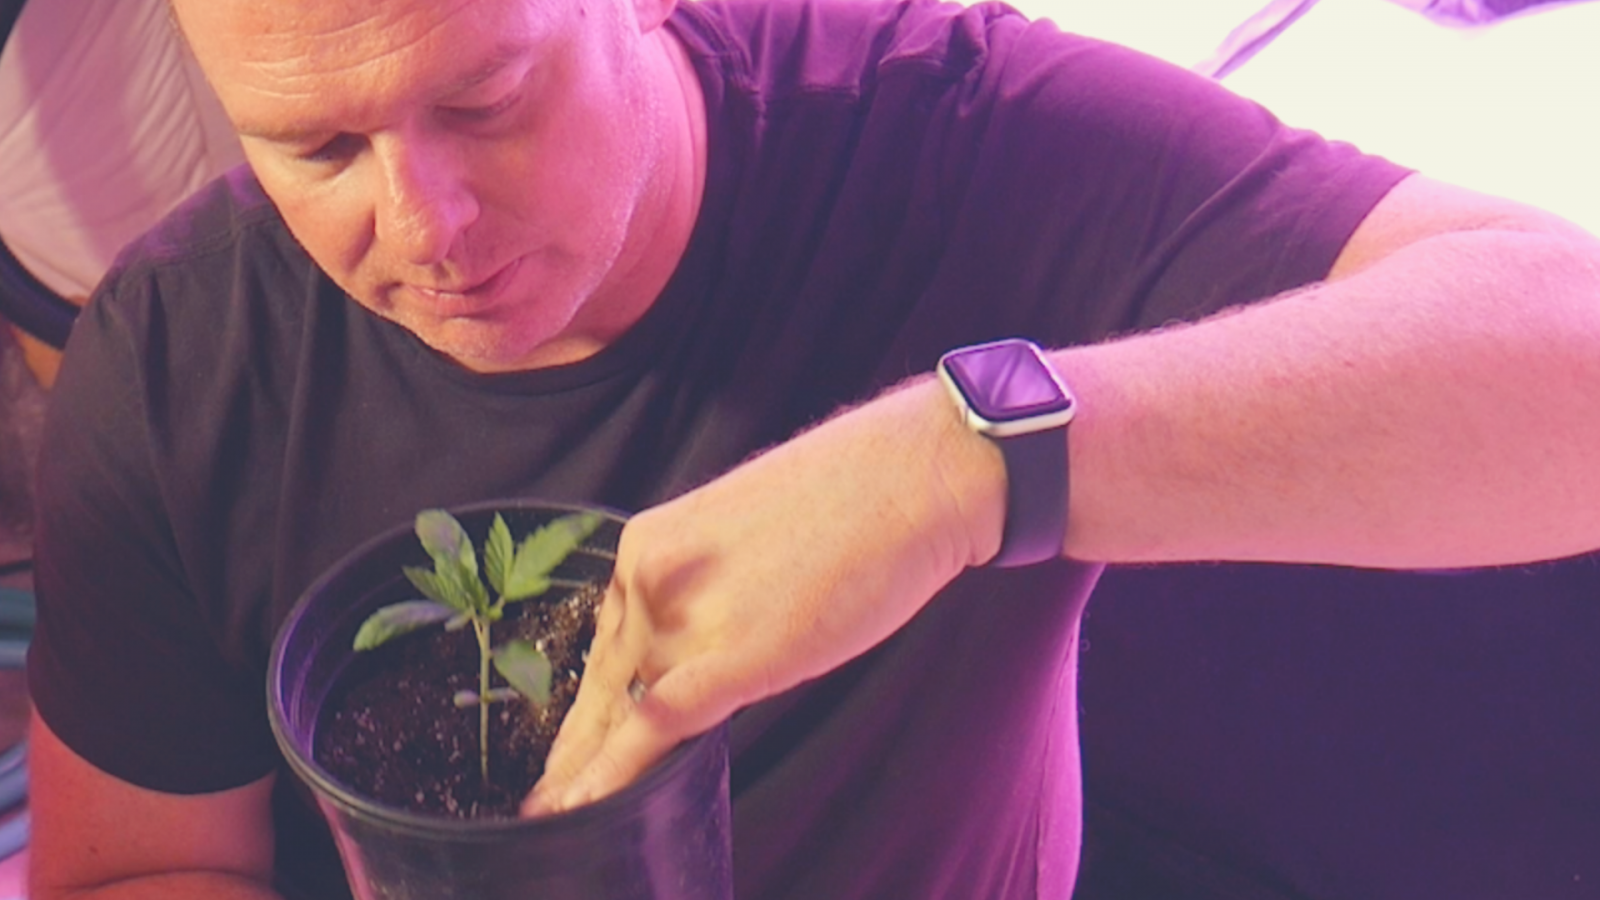 Now You've Got Seedlings | What's Going On in Dave's Grow?